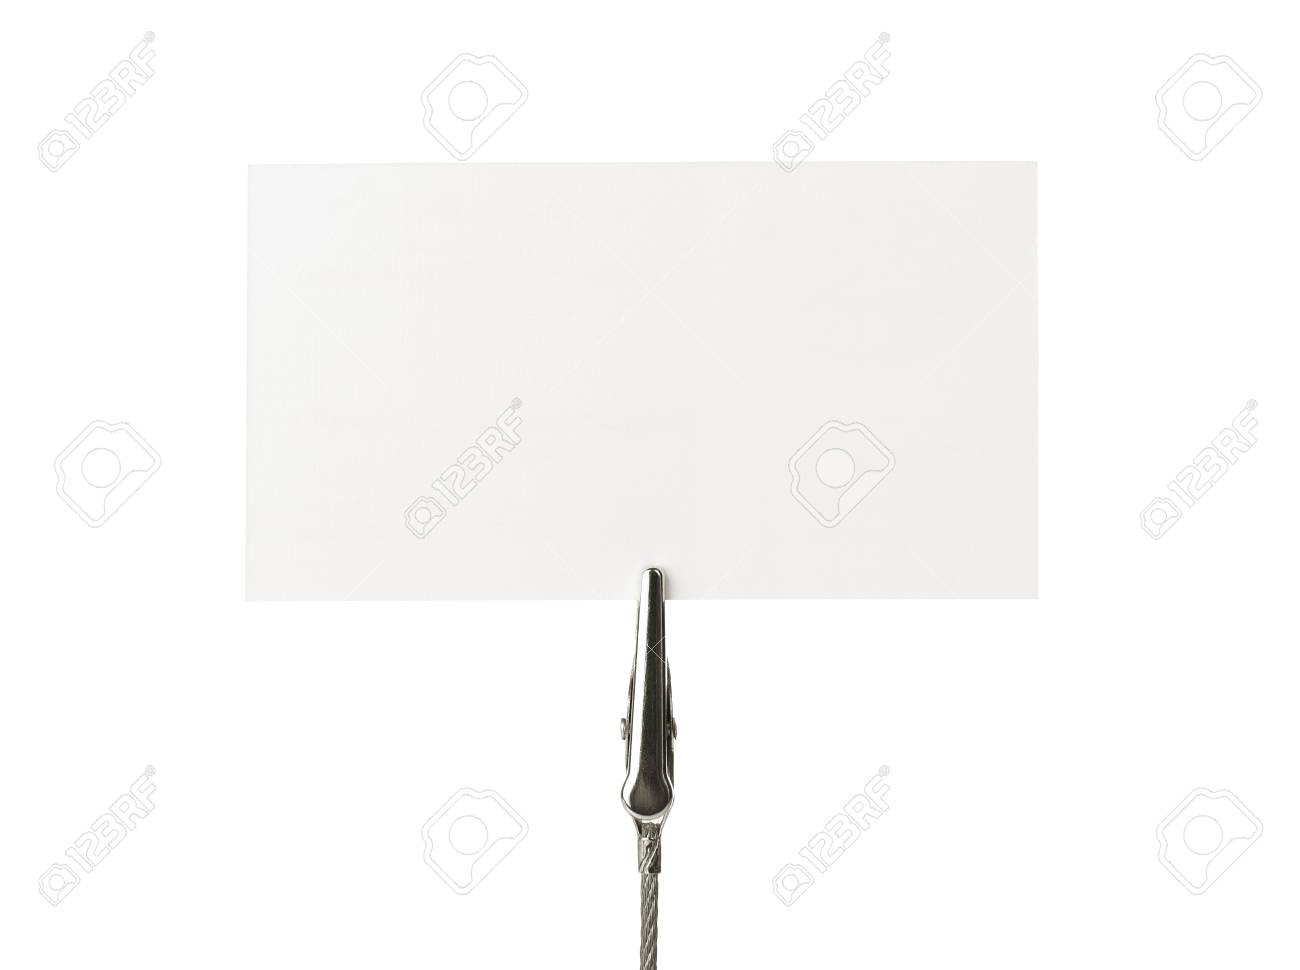 Blank business card on a clip over white background Stock Photo - 10875298